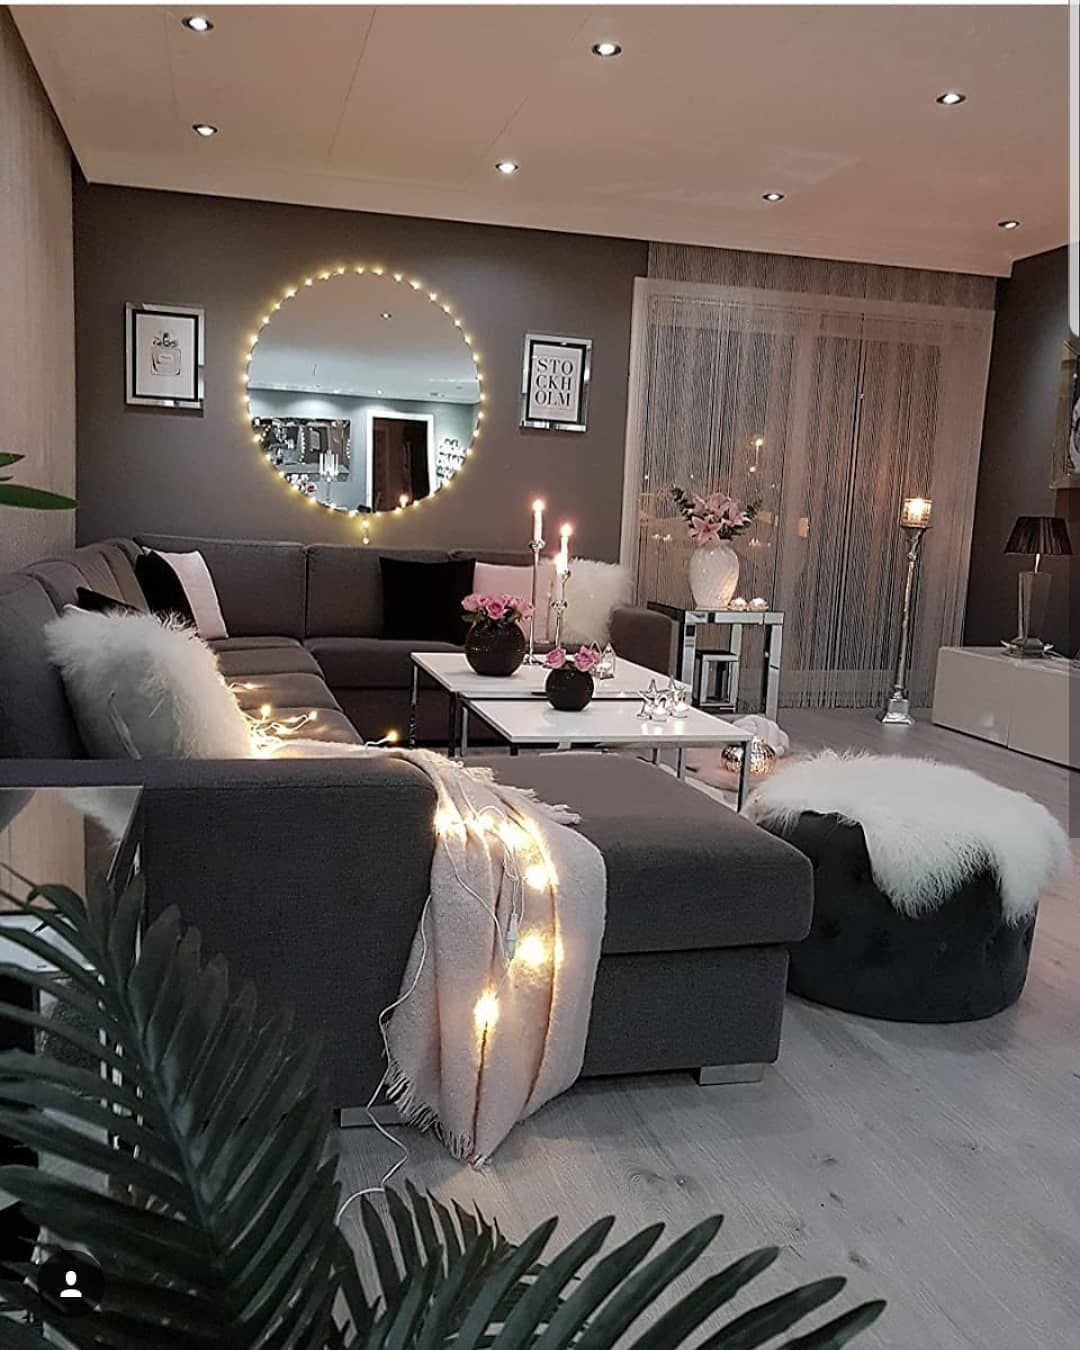 Inspire Me Home Decor Living Room: Credit 📷 @merals_home #inspire_me_home_decor